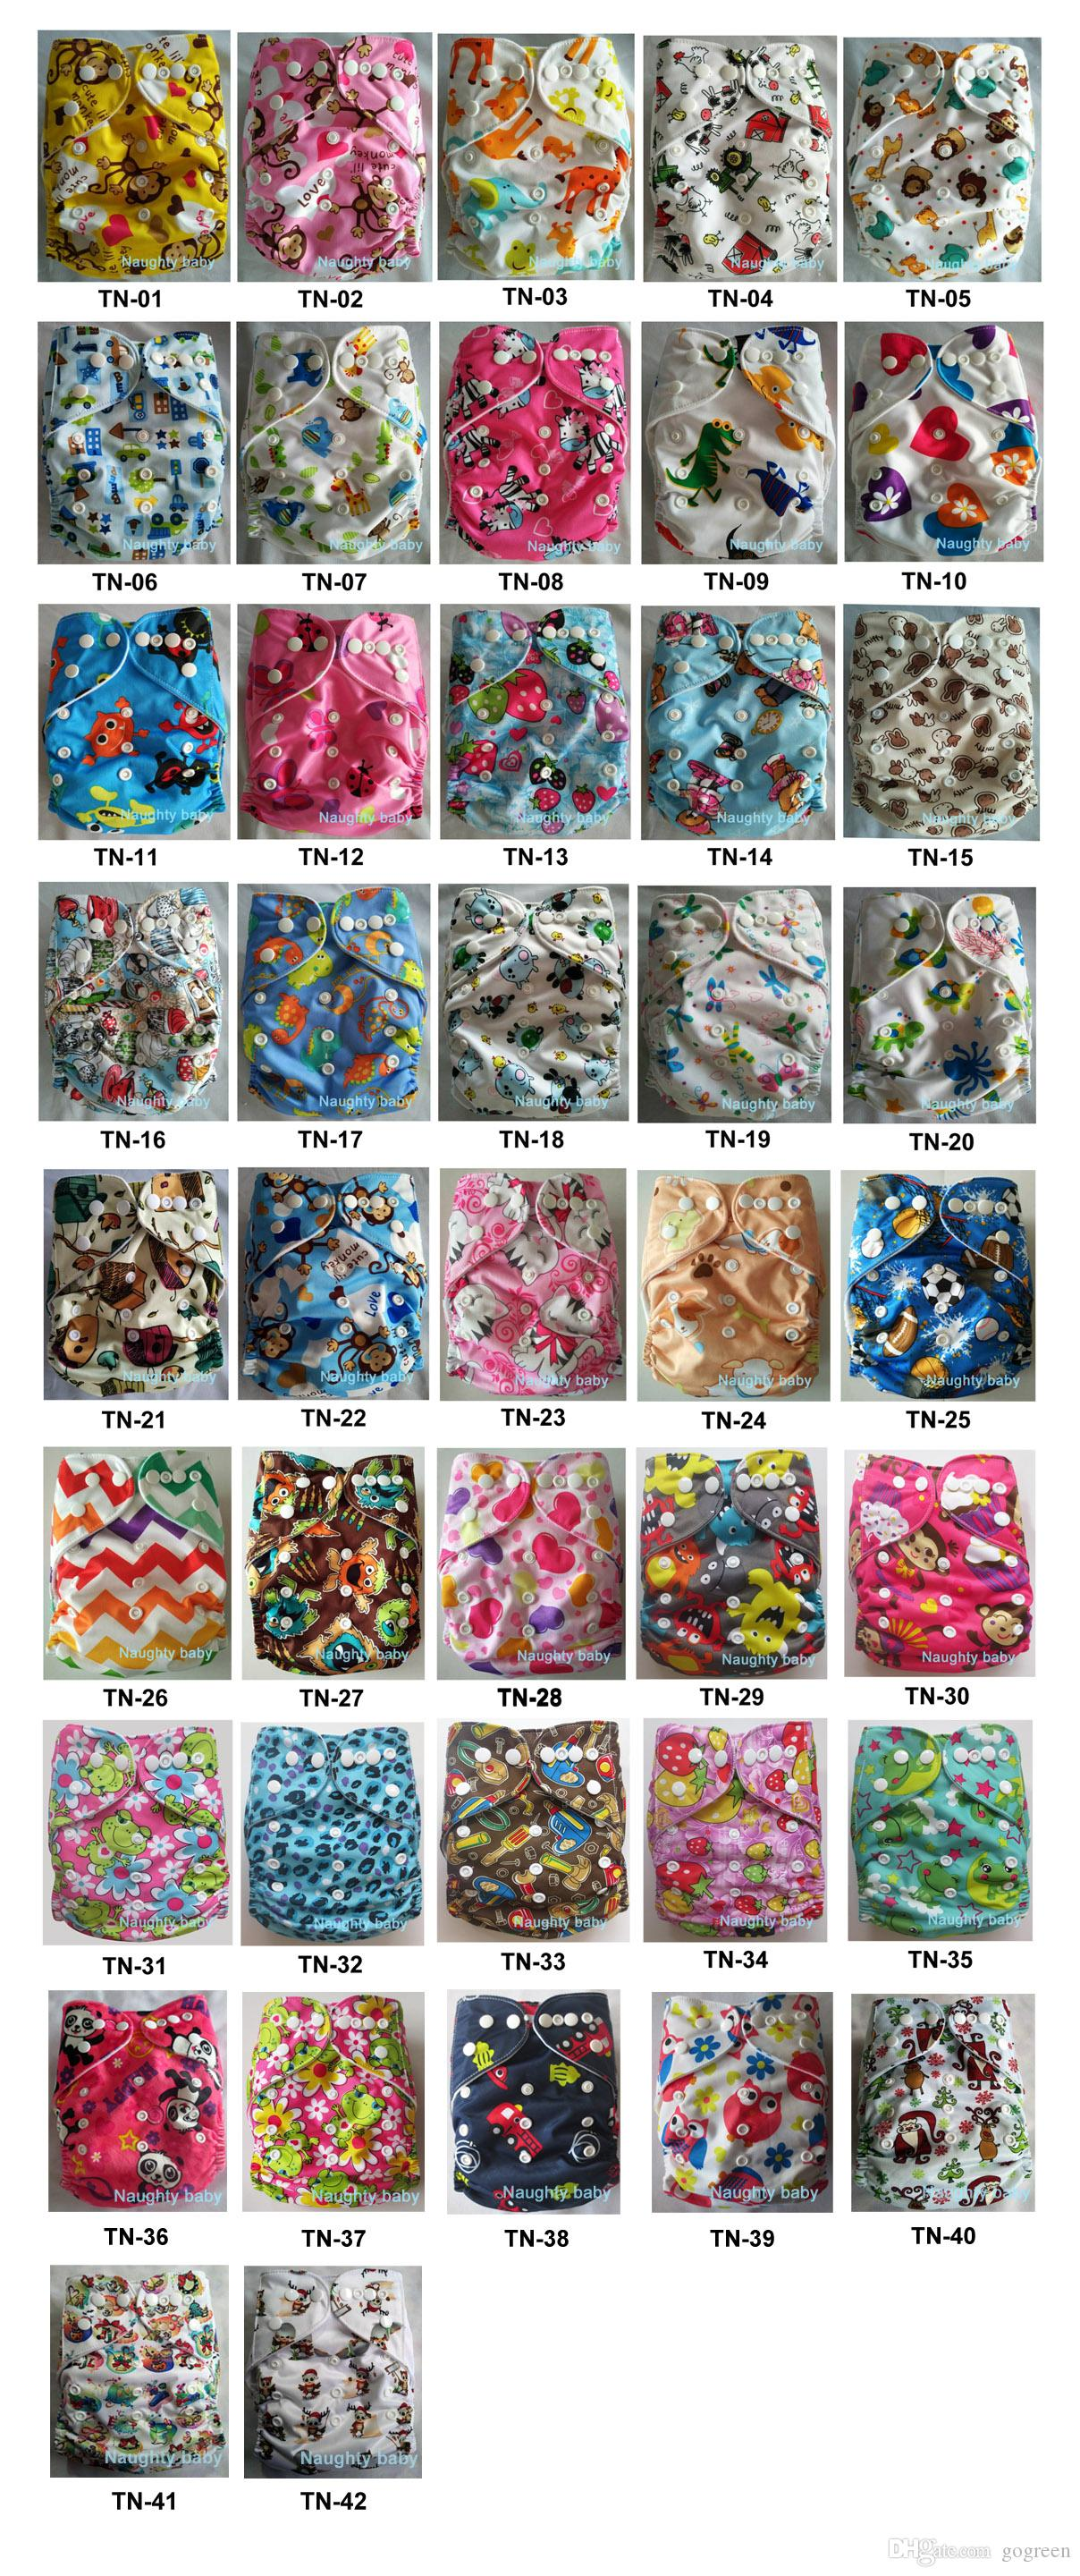 New Print Colorful Nuaghtybaby Reusable Washable Printed Cloth Diaper for Girls boys With Inserts